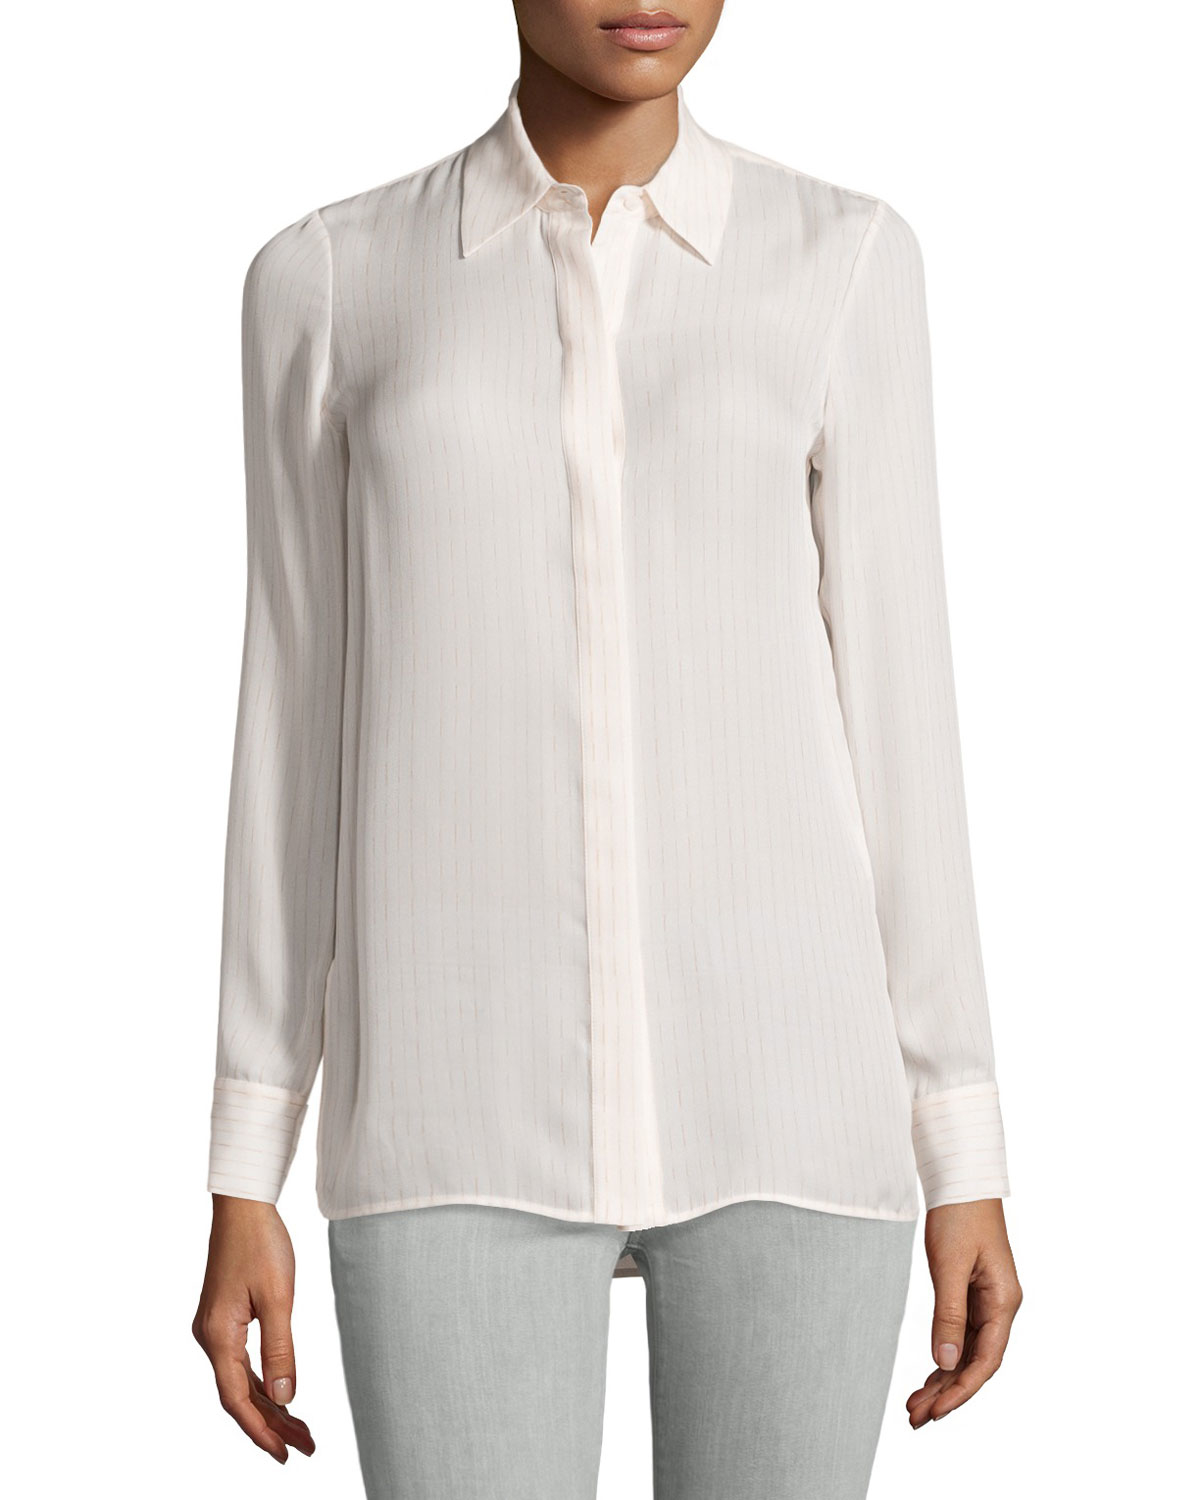 Find women's blouses for work and play in a variety of popular styles like tunics, ruffle blouses & more. Browse best-selling blouses at bestkapper.tk